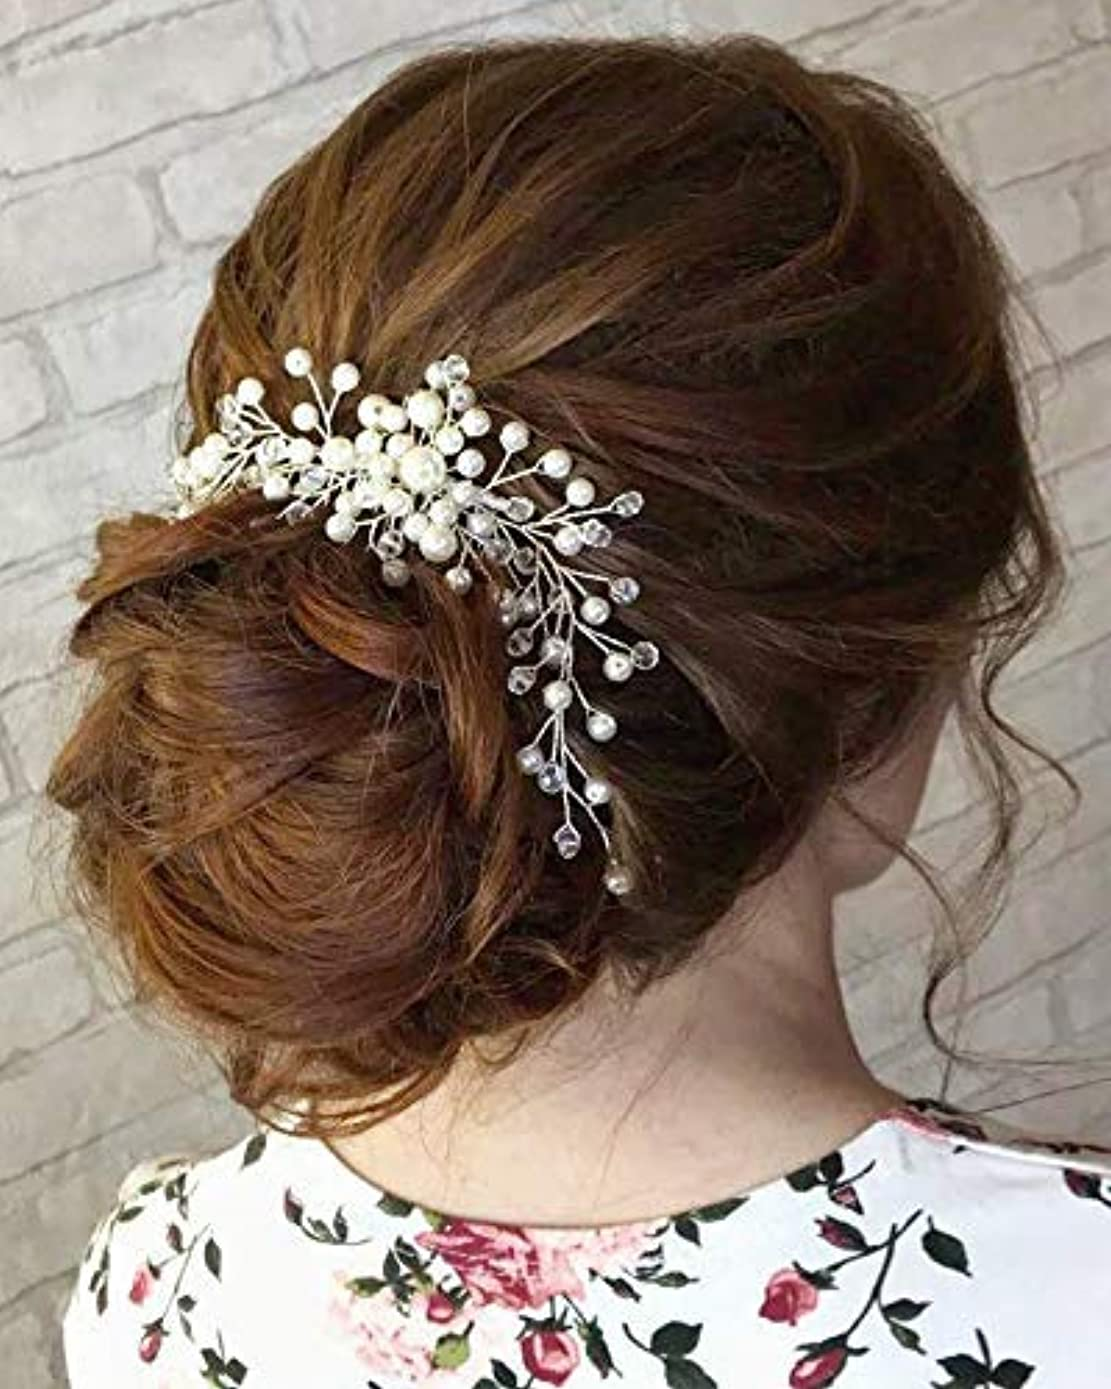 サイバースペースバランスのとれたロックKercisbeauty Wedding Simple Pearl Hair Comb for Brides Bridal Headpiece Long Curly Updo Hair Accessories Prom...